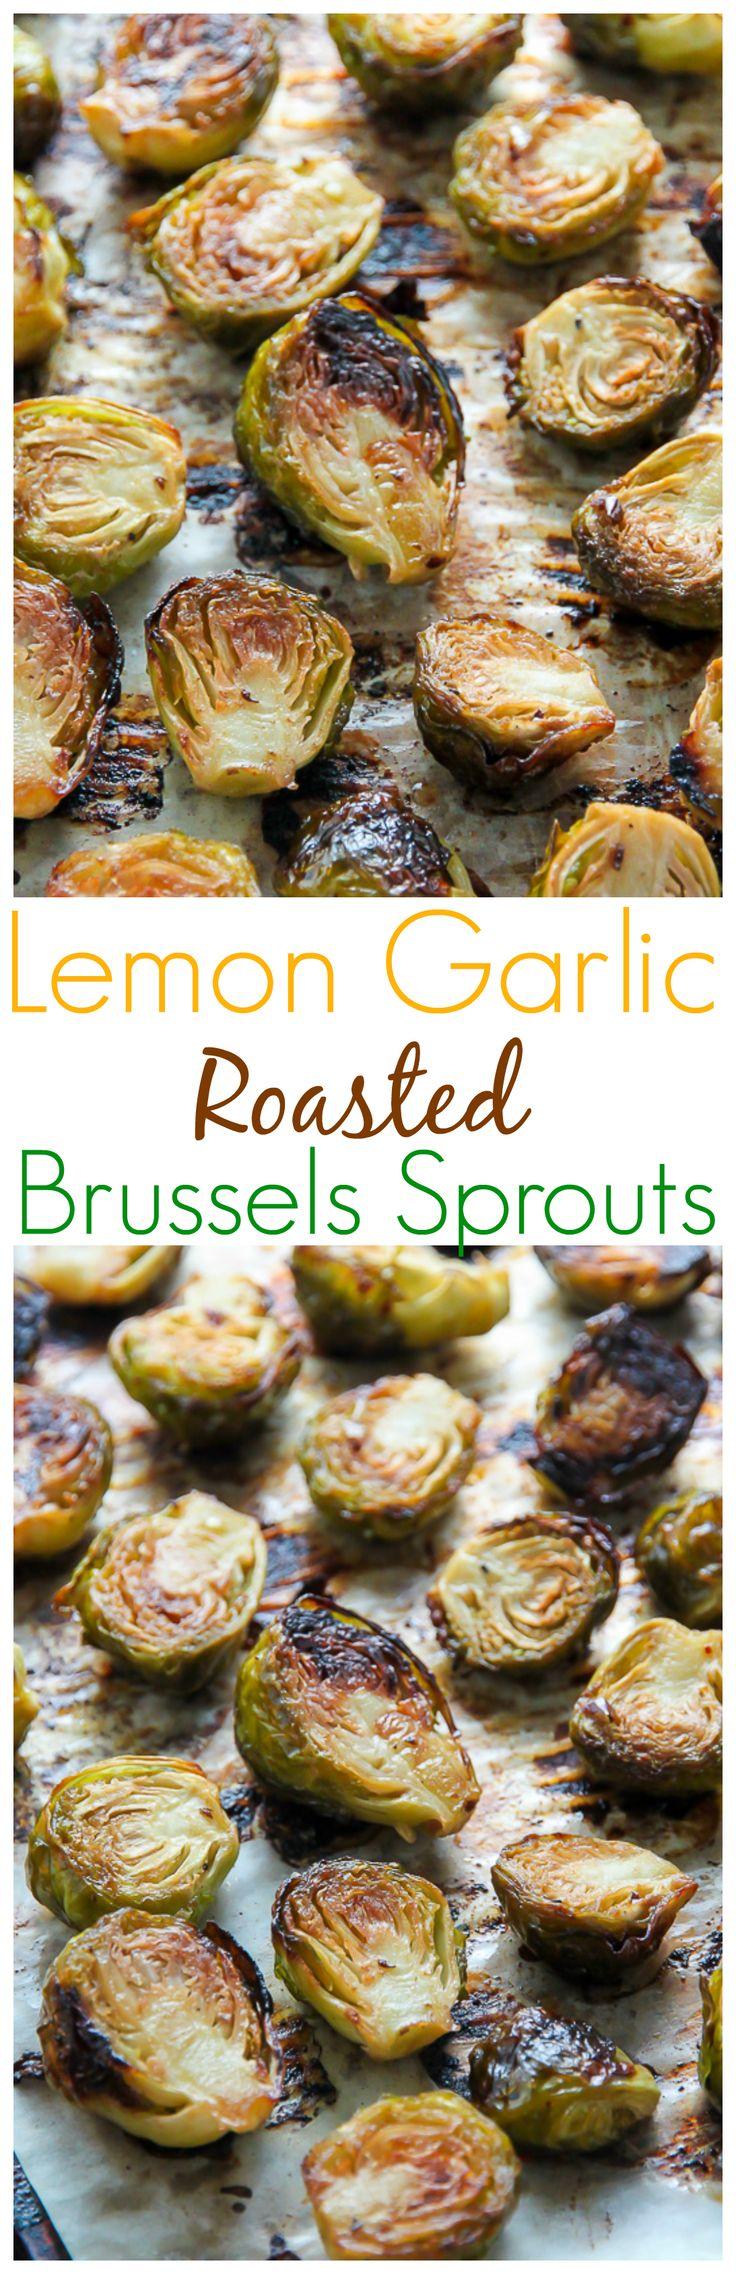 Crispy and flavorful Lemon Garlic Brussels sprouts